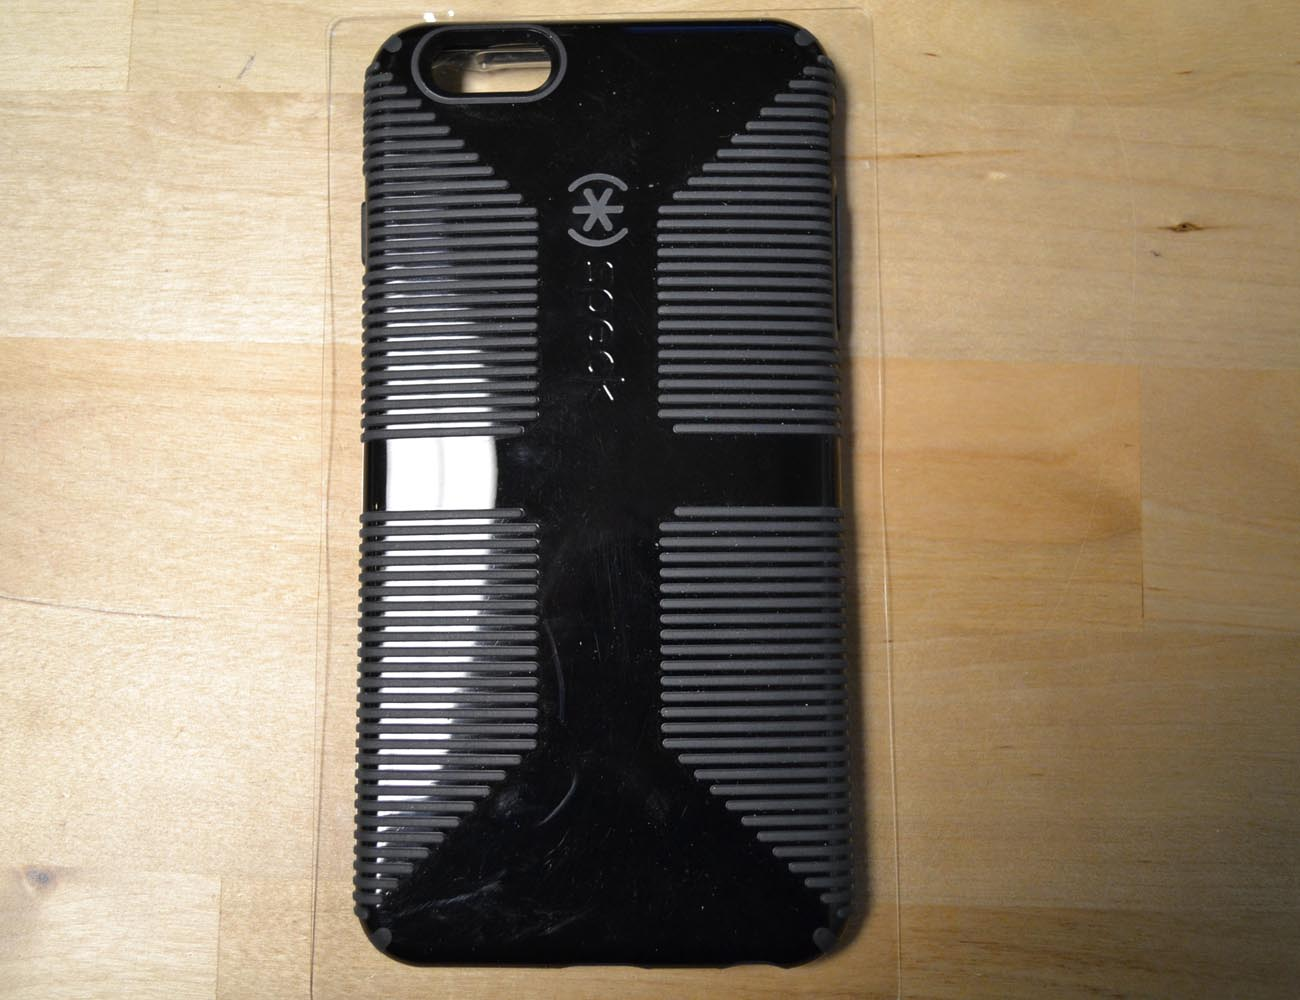 CandyShell Grip iPhone 6/6s Plus Cases